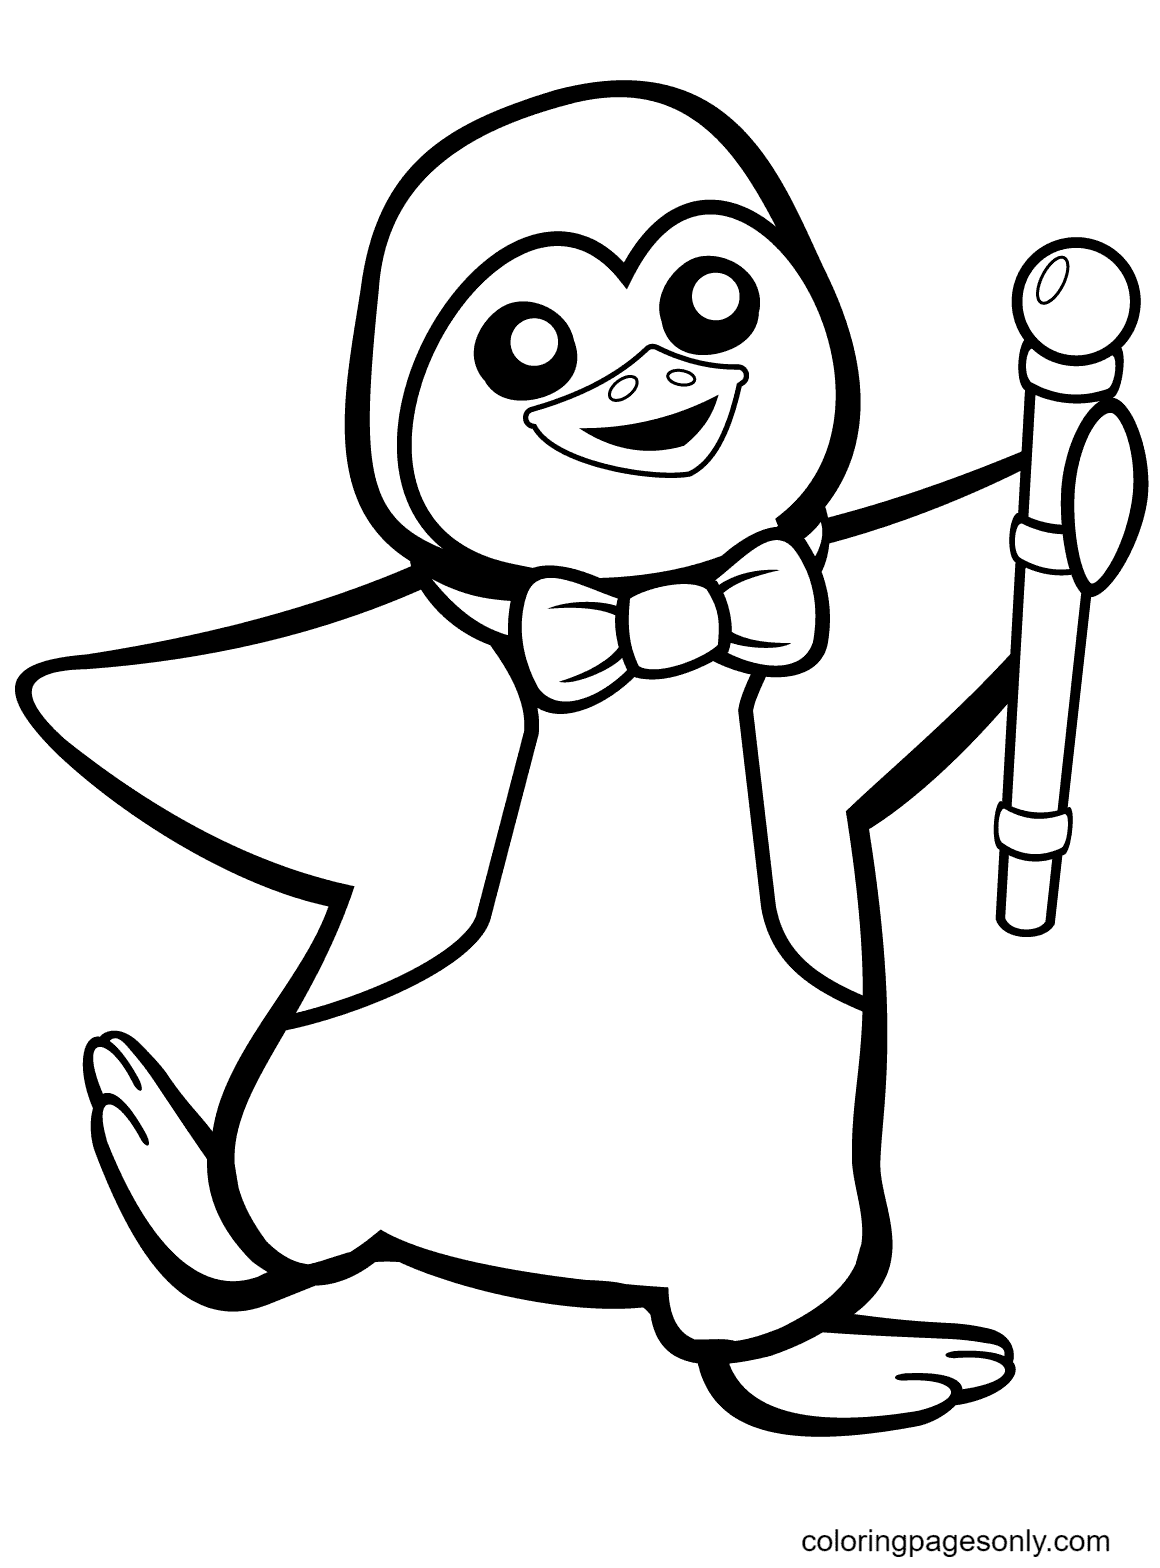 Funny Penguin with Bow Tie Coloring Page